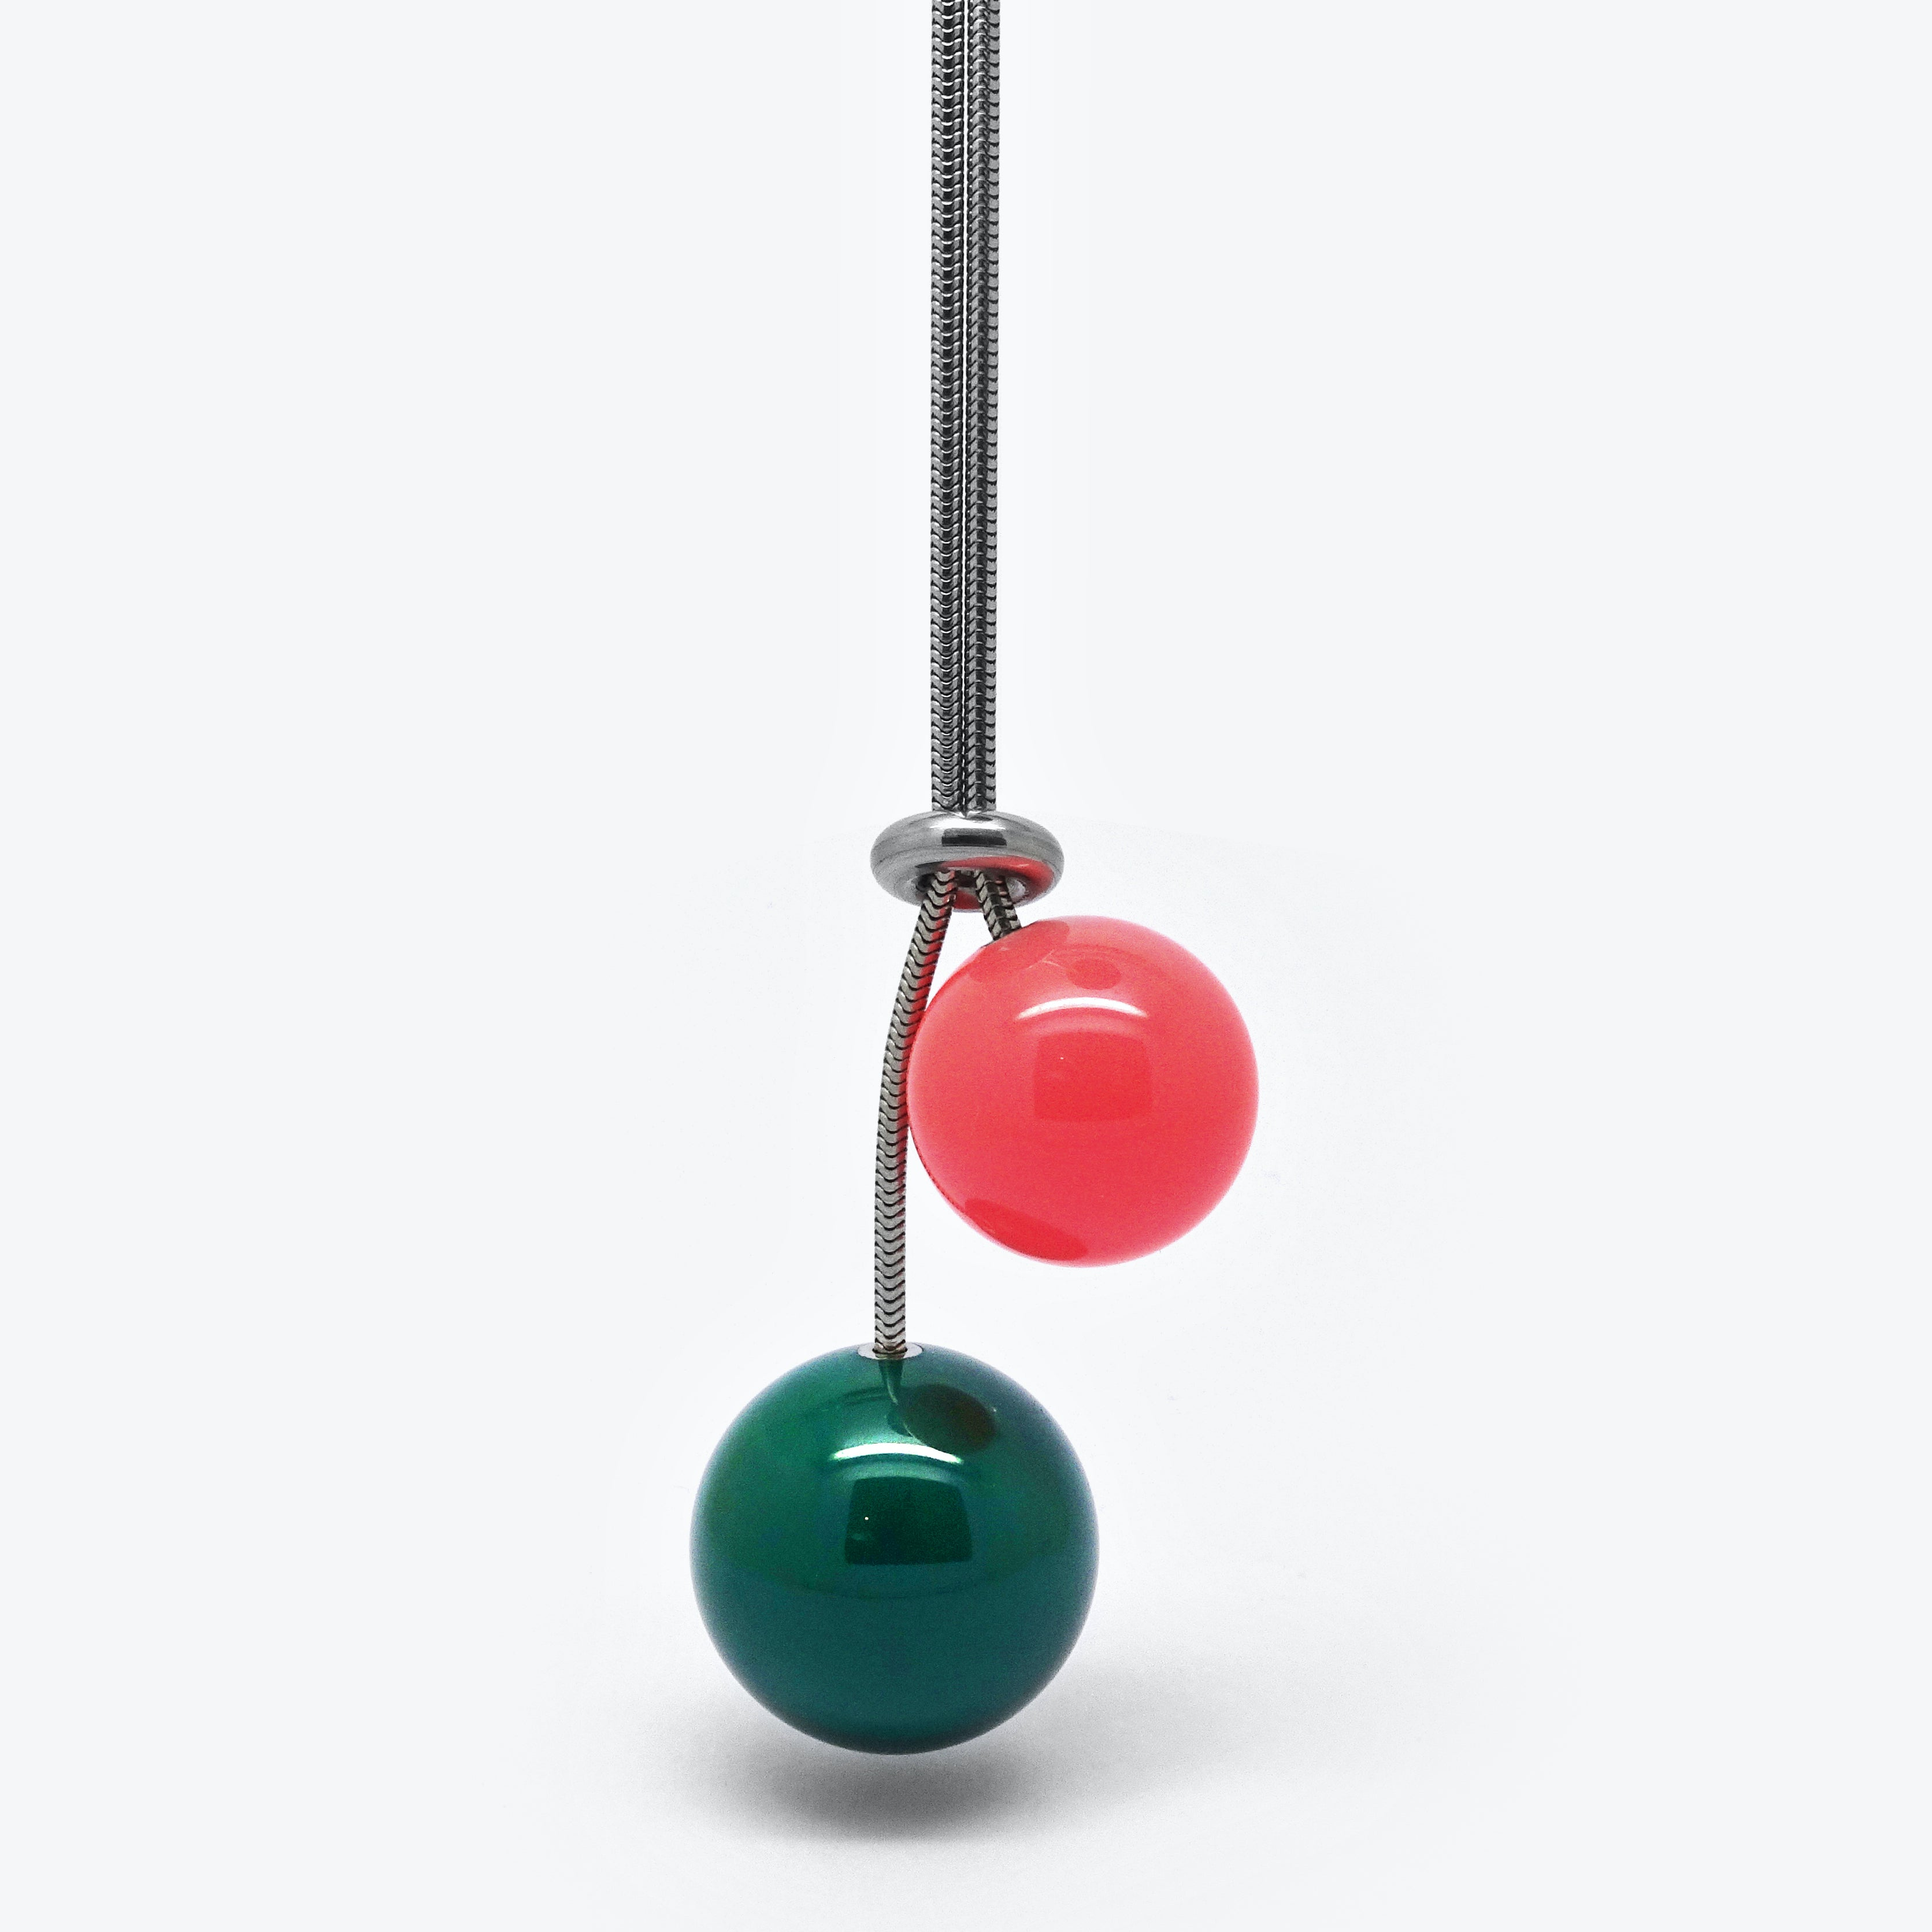 DOUBLE BALL NECKLACE - GREEN & PINK